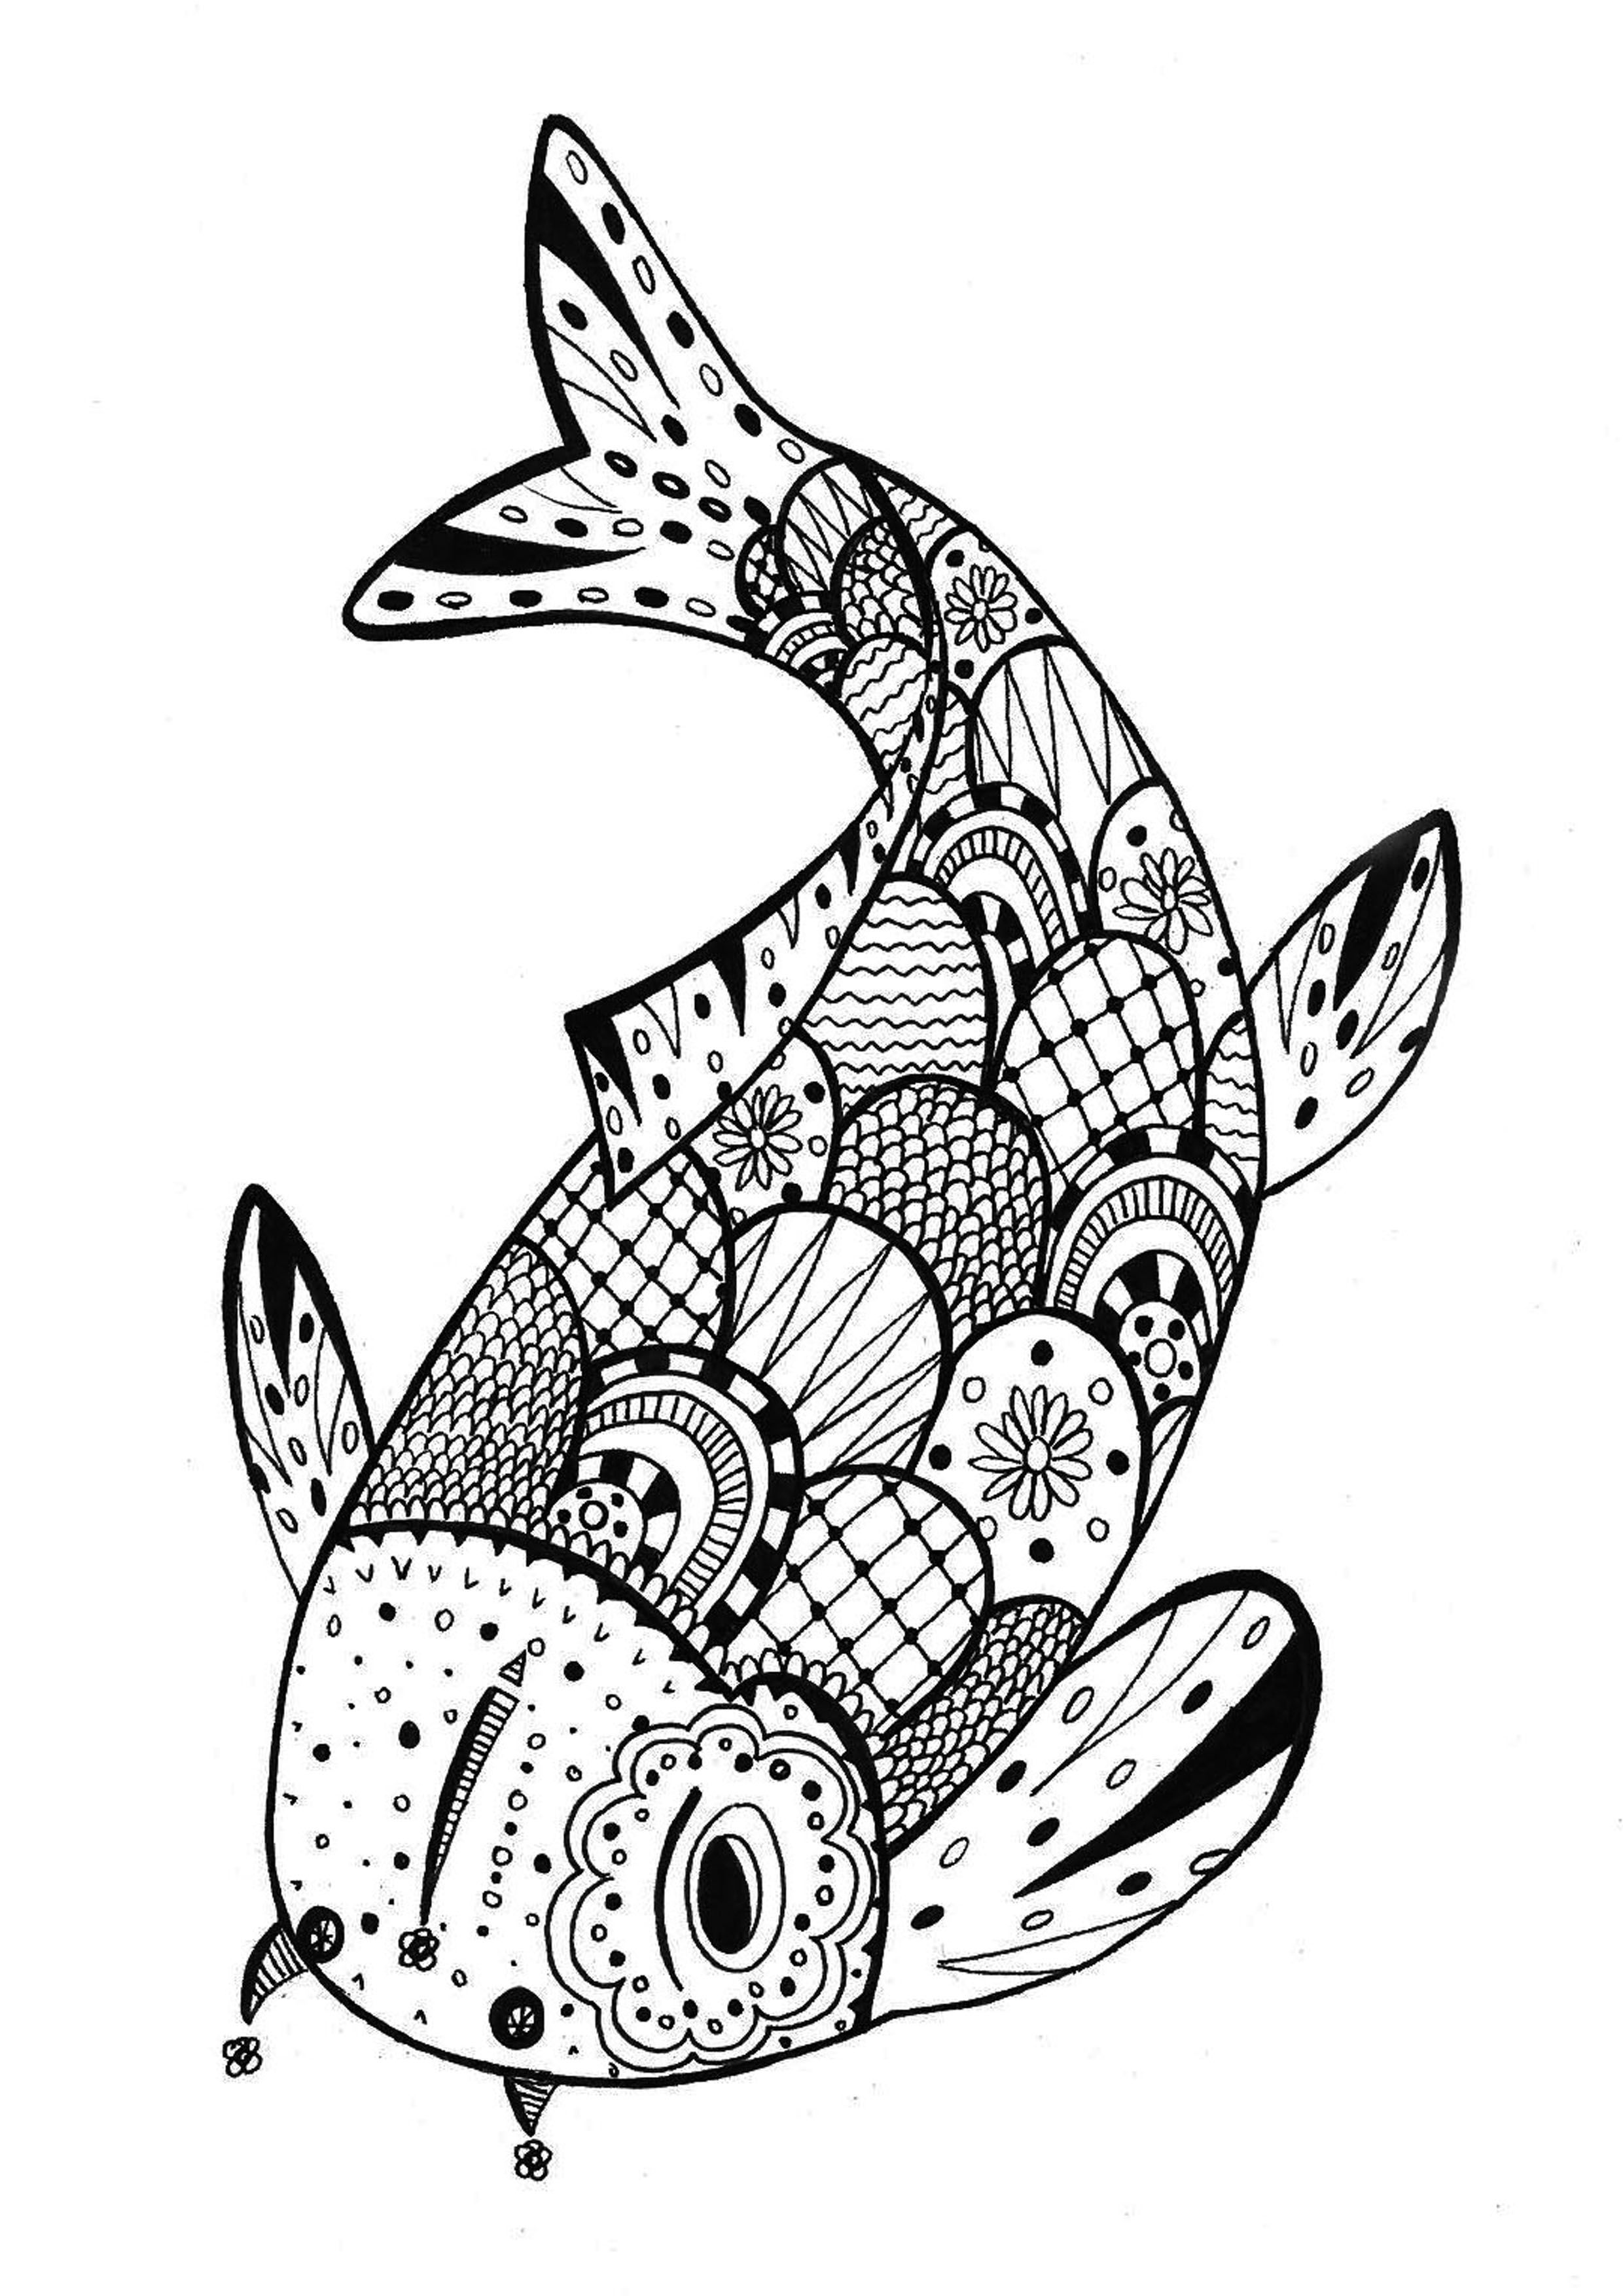 A beautiful fish for a coloring